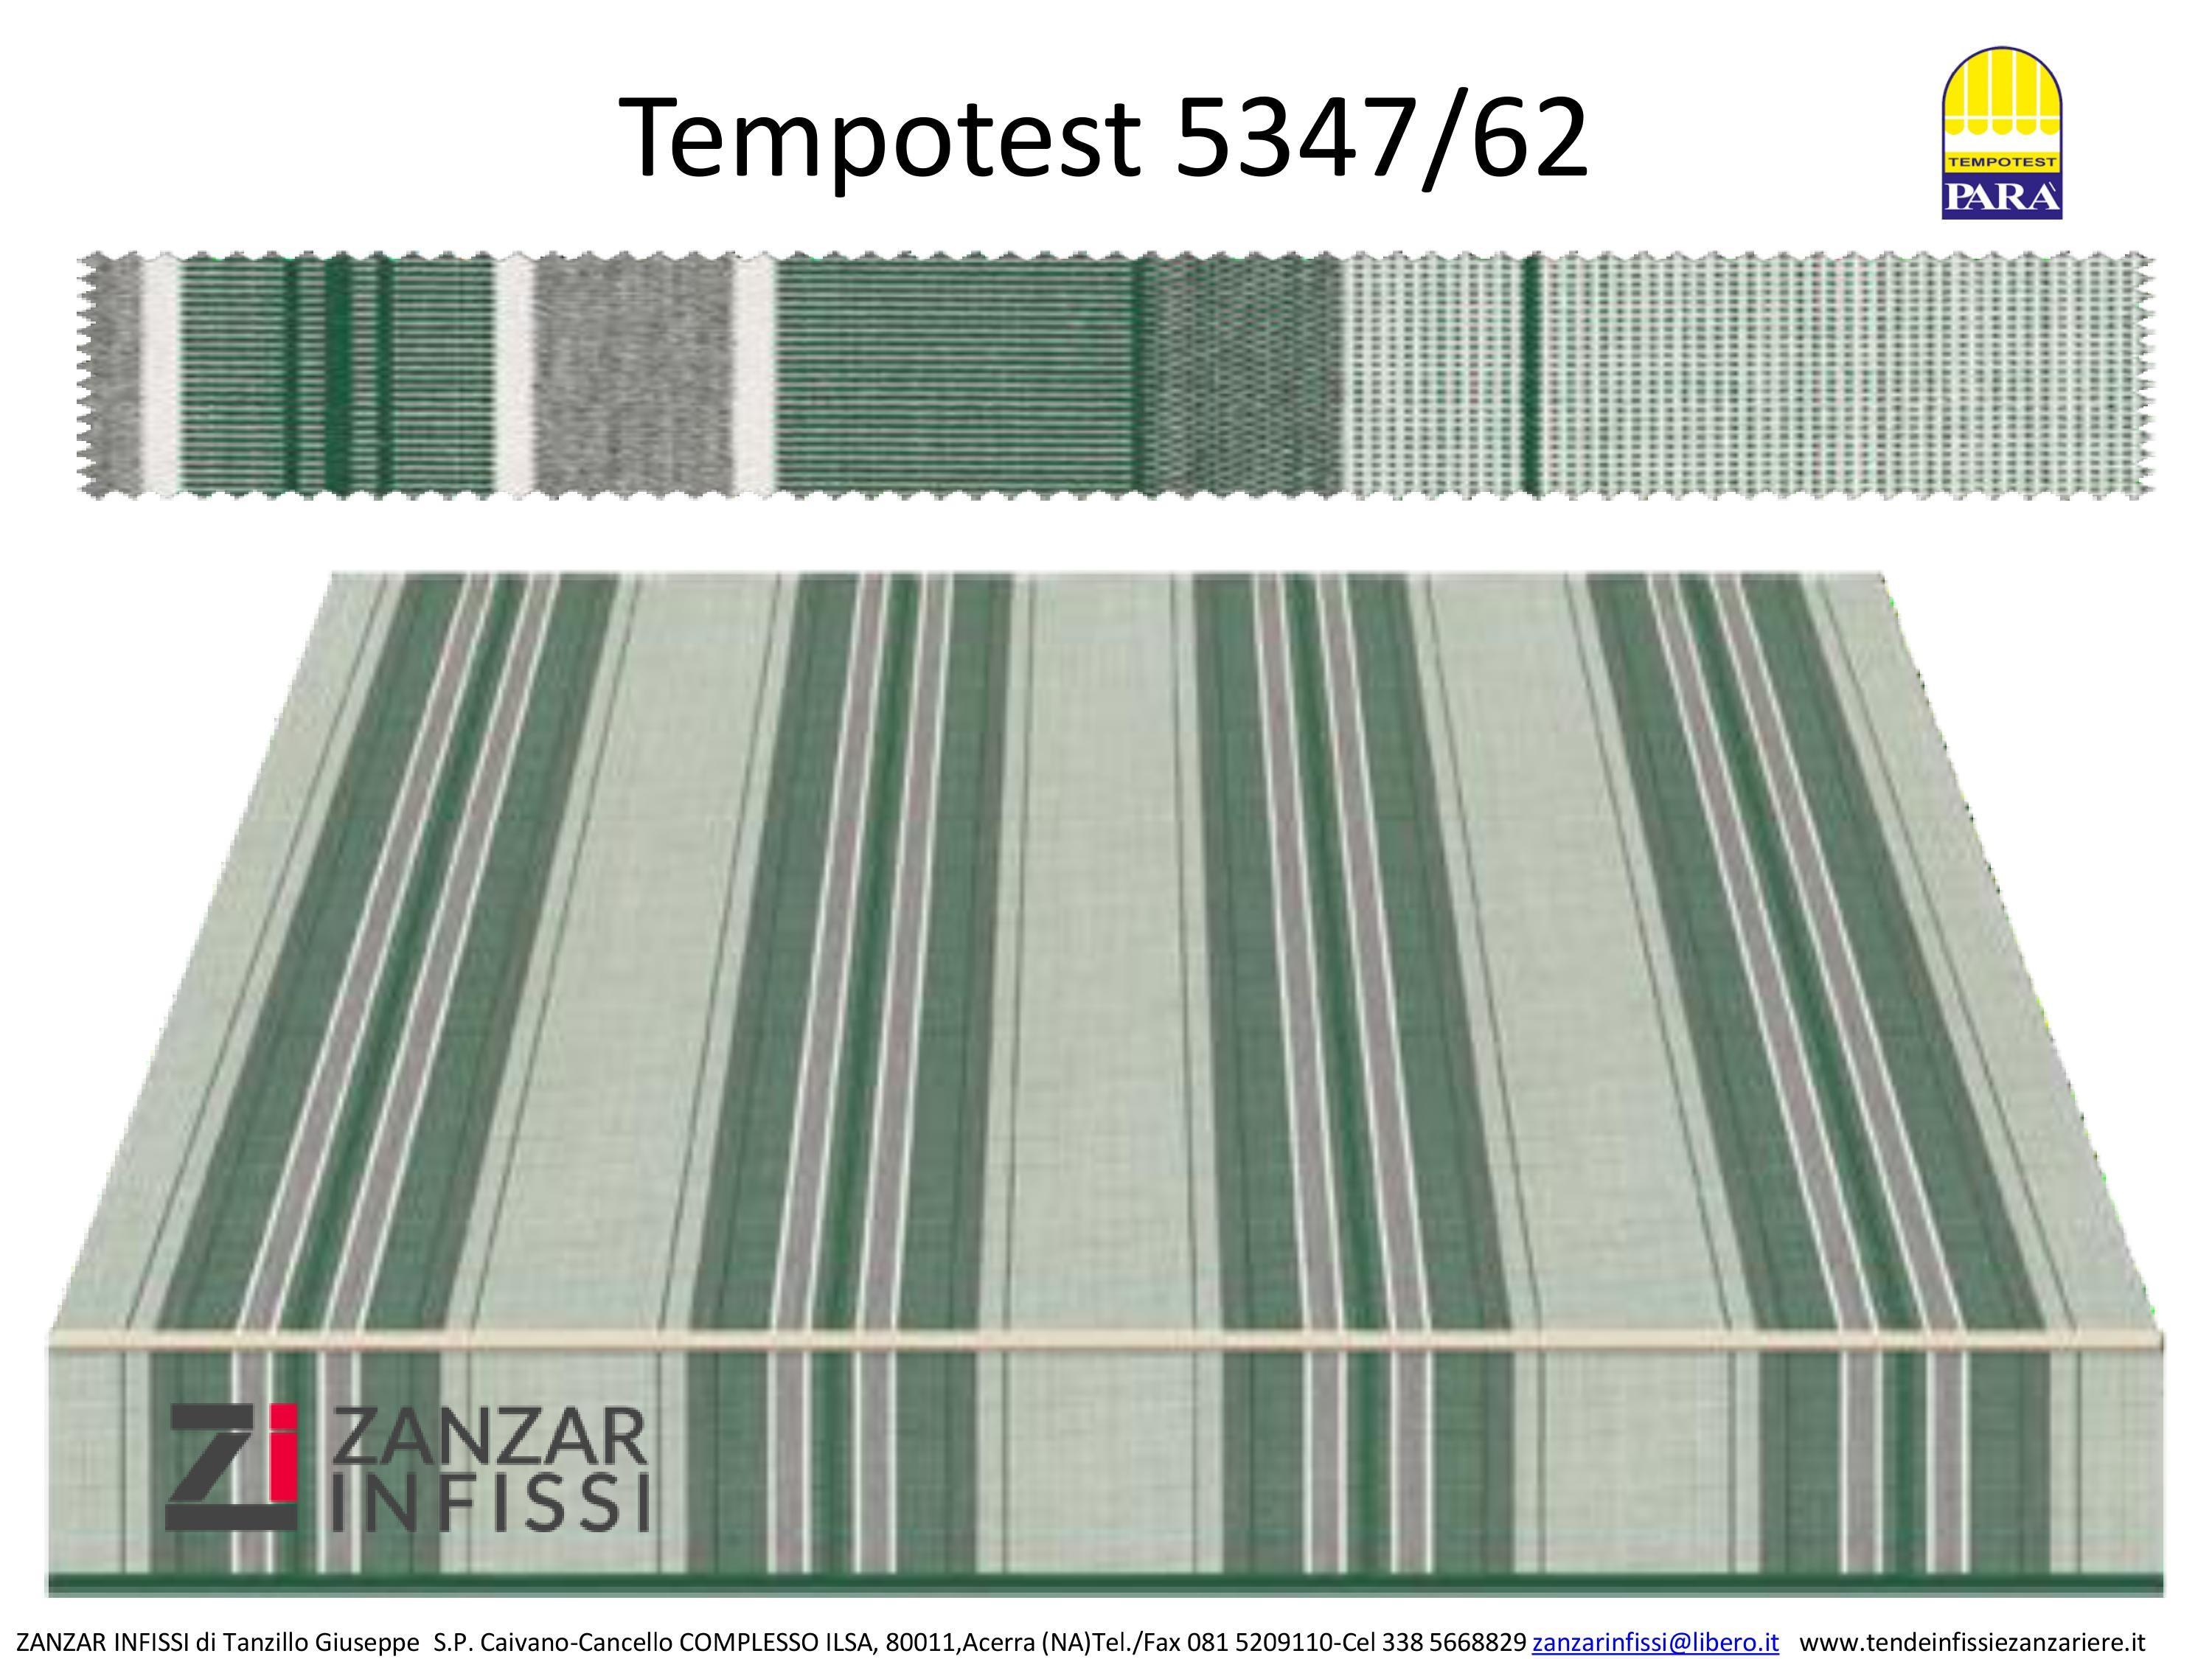 Tempotest 5347/62